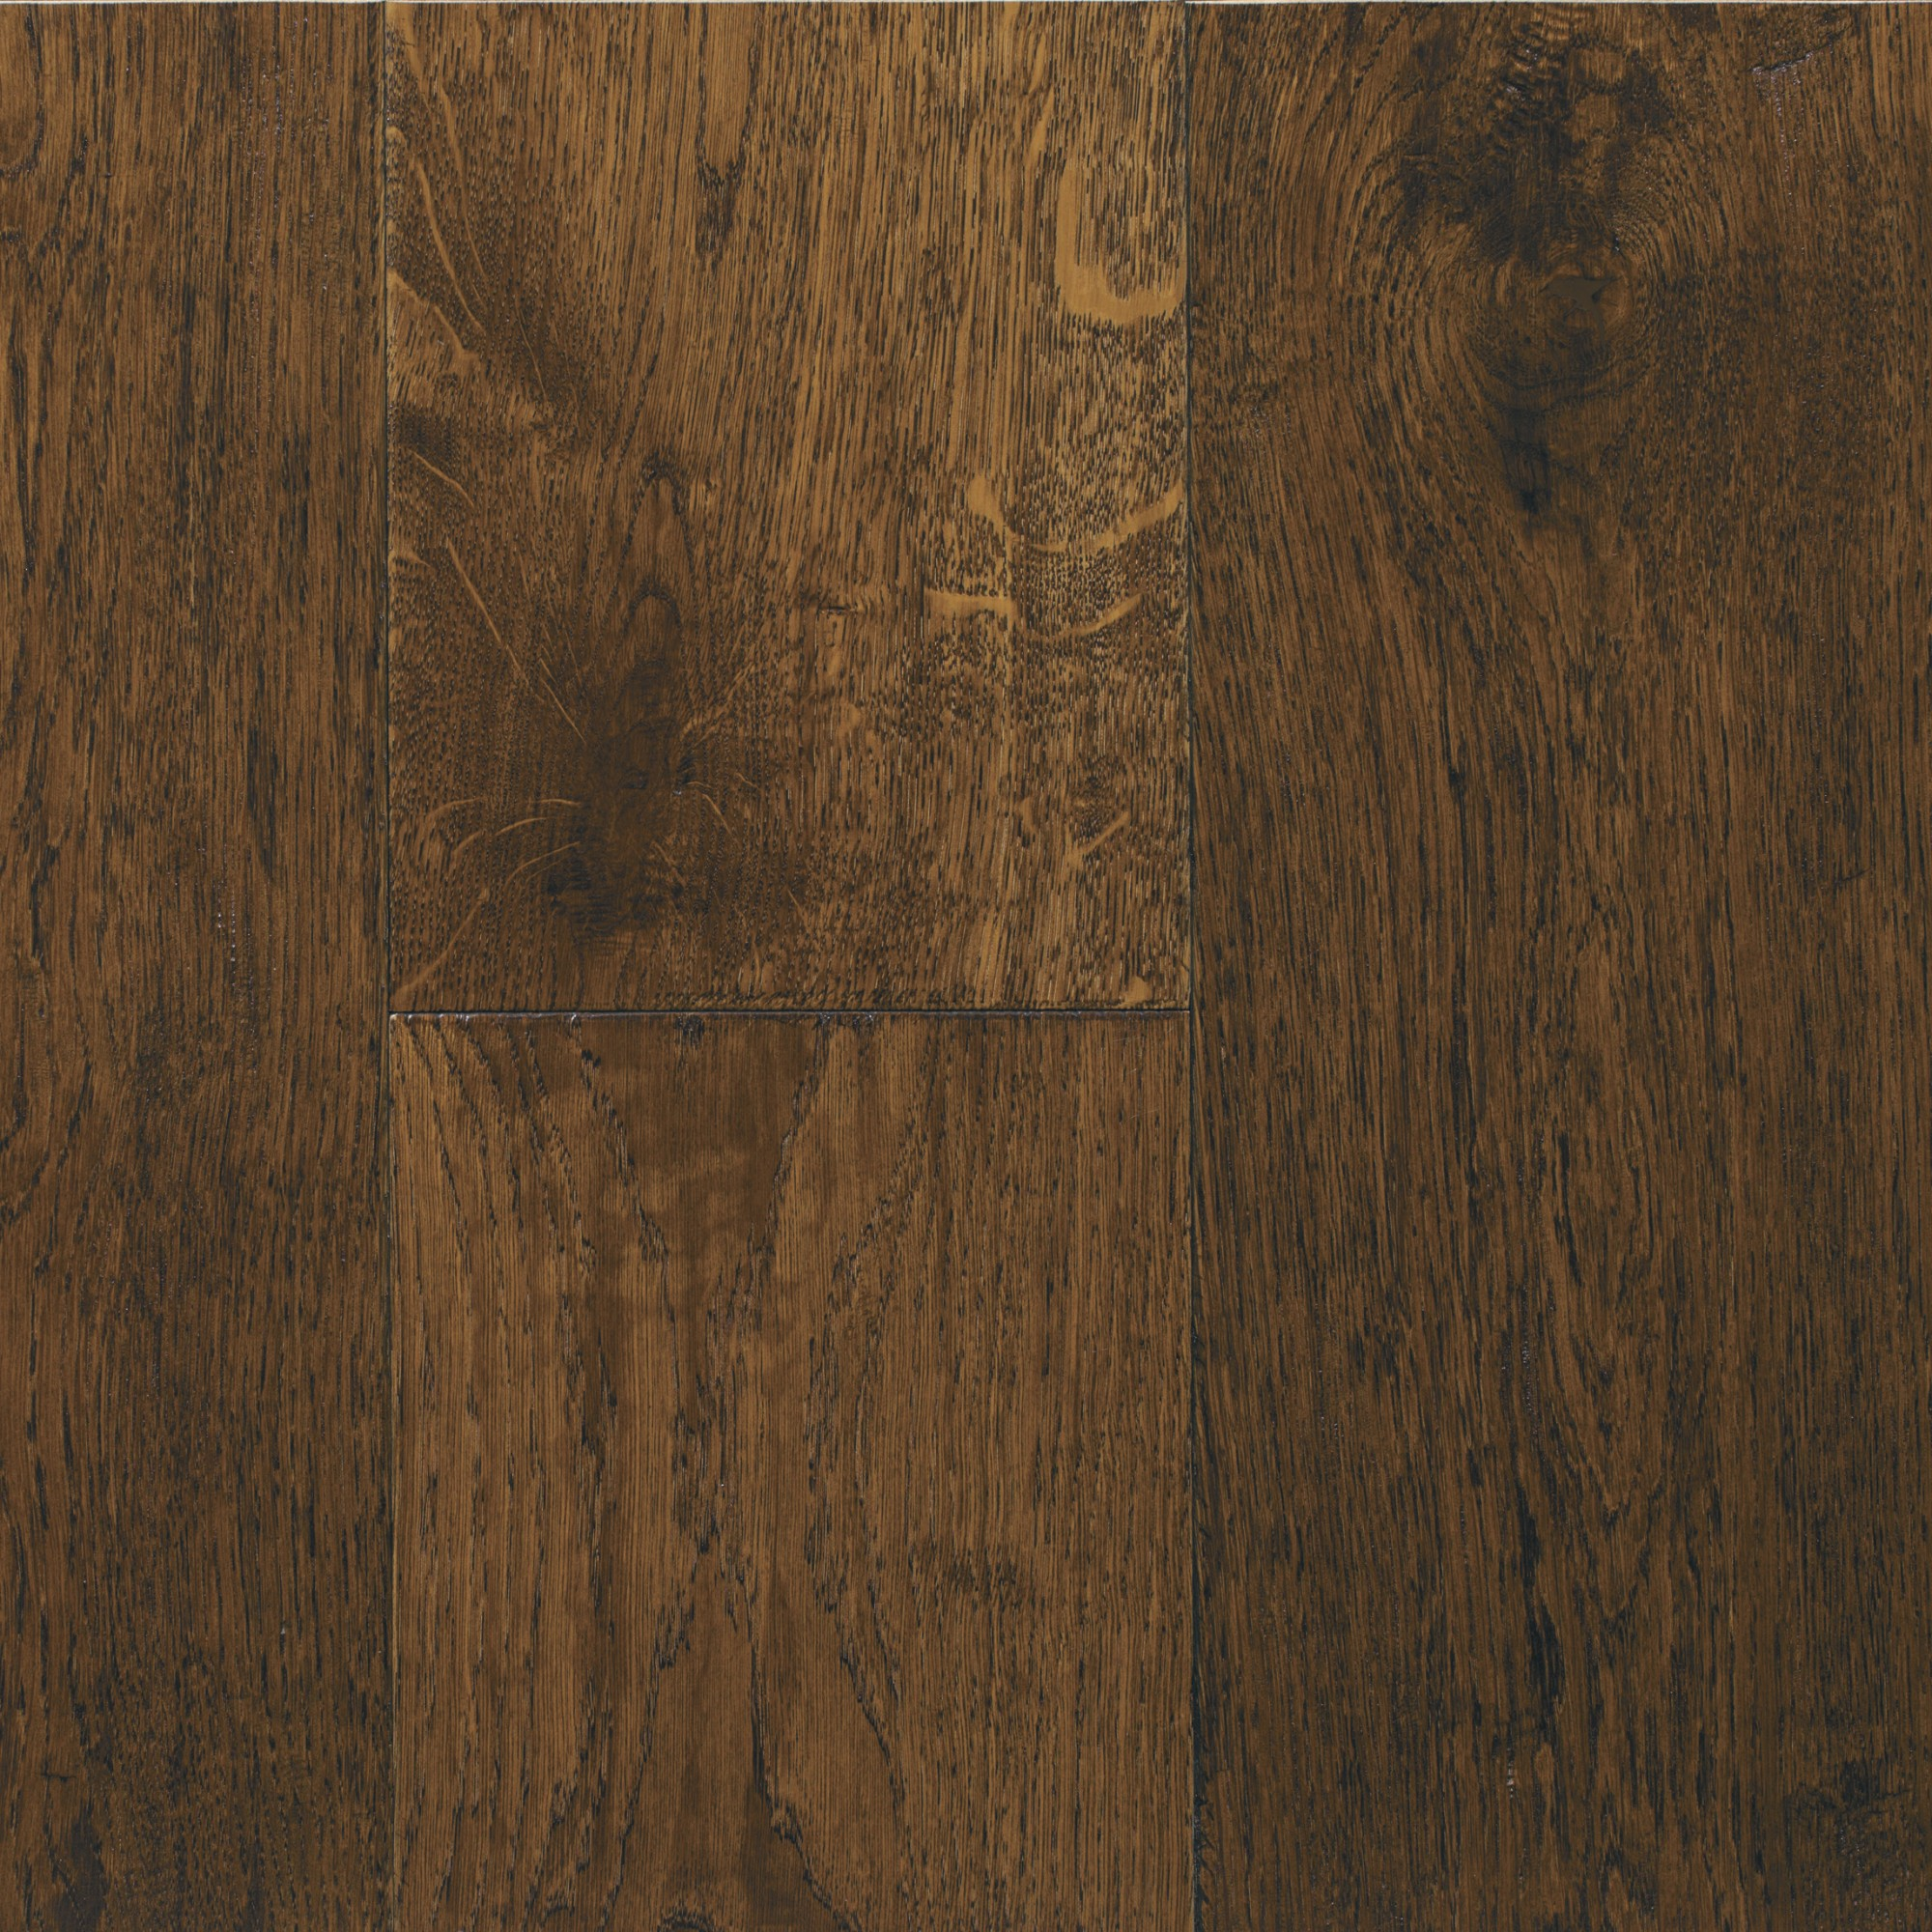 Hand Scraped White Oak Buckingham Vintage Hardwood